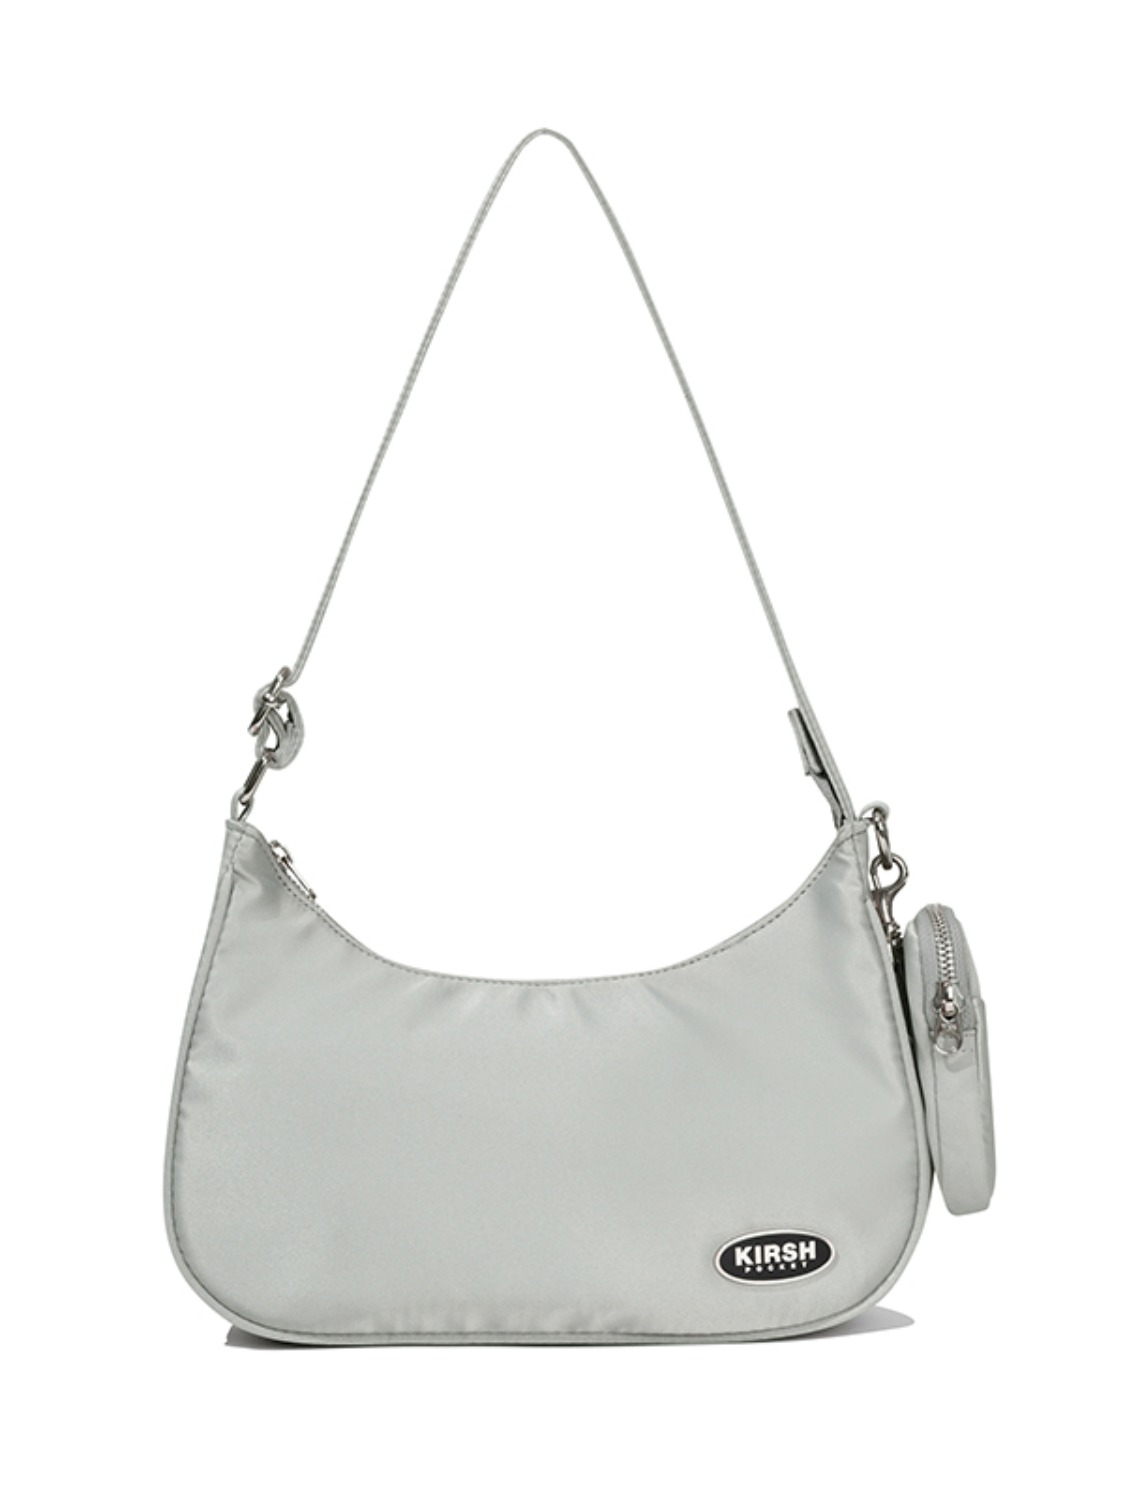 KIRSH POCKET PIPING MINI SHOULDER BAG JA [LIGHT GRAY]